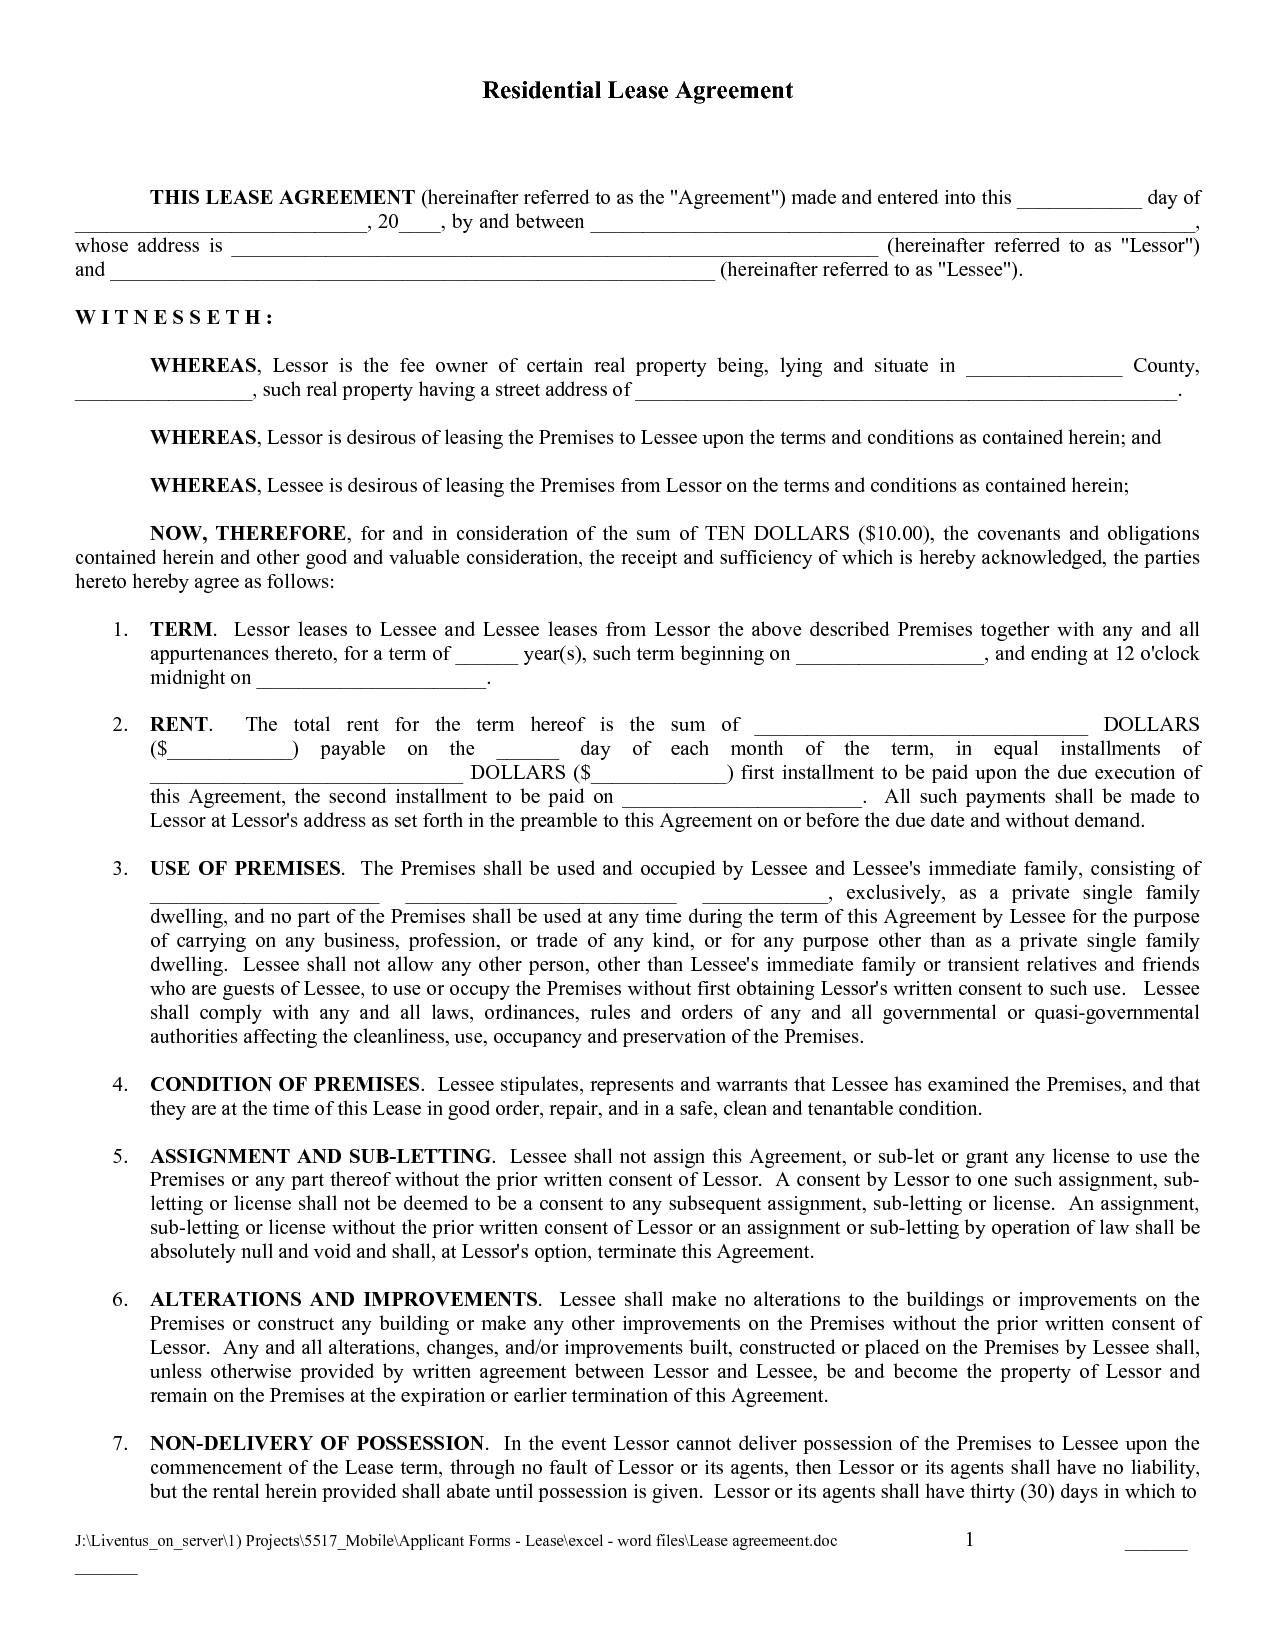 Residential Lease Agreement Form Free Download - Tutlin.psstech.co - Rental Agreement Forms Free Printable